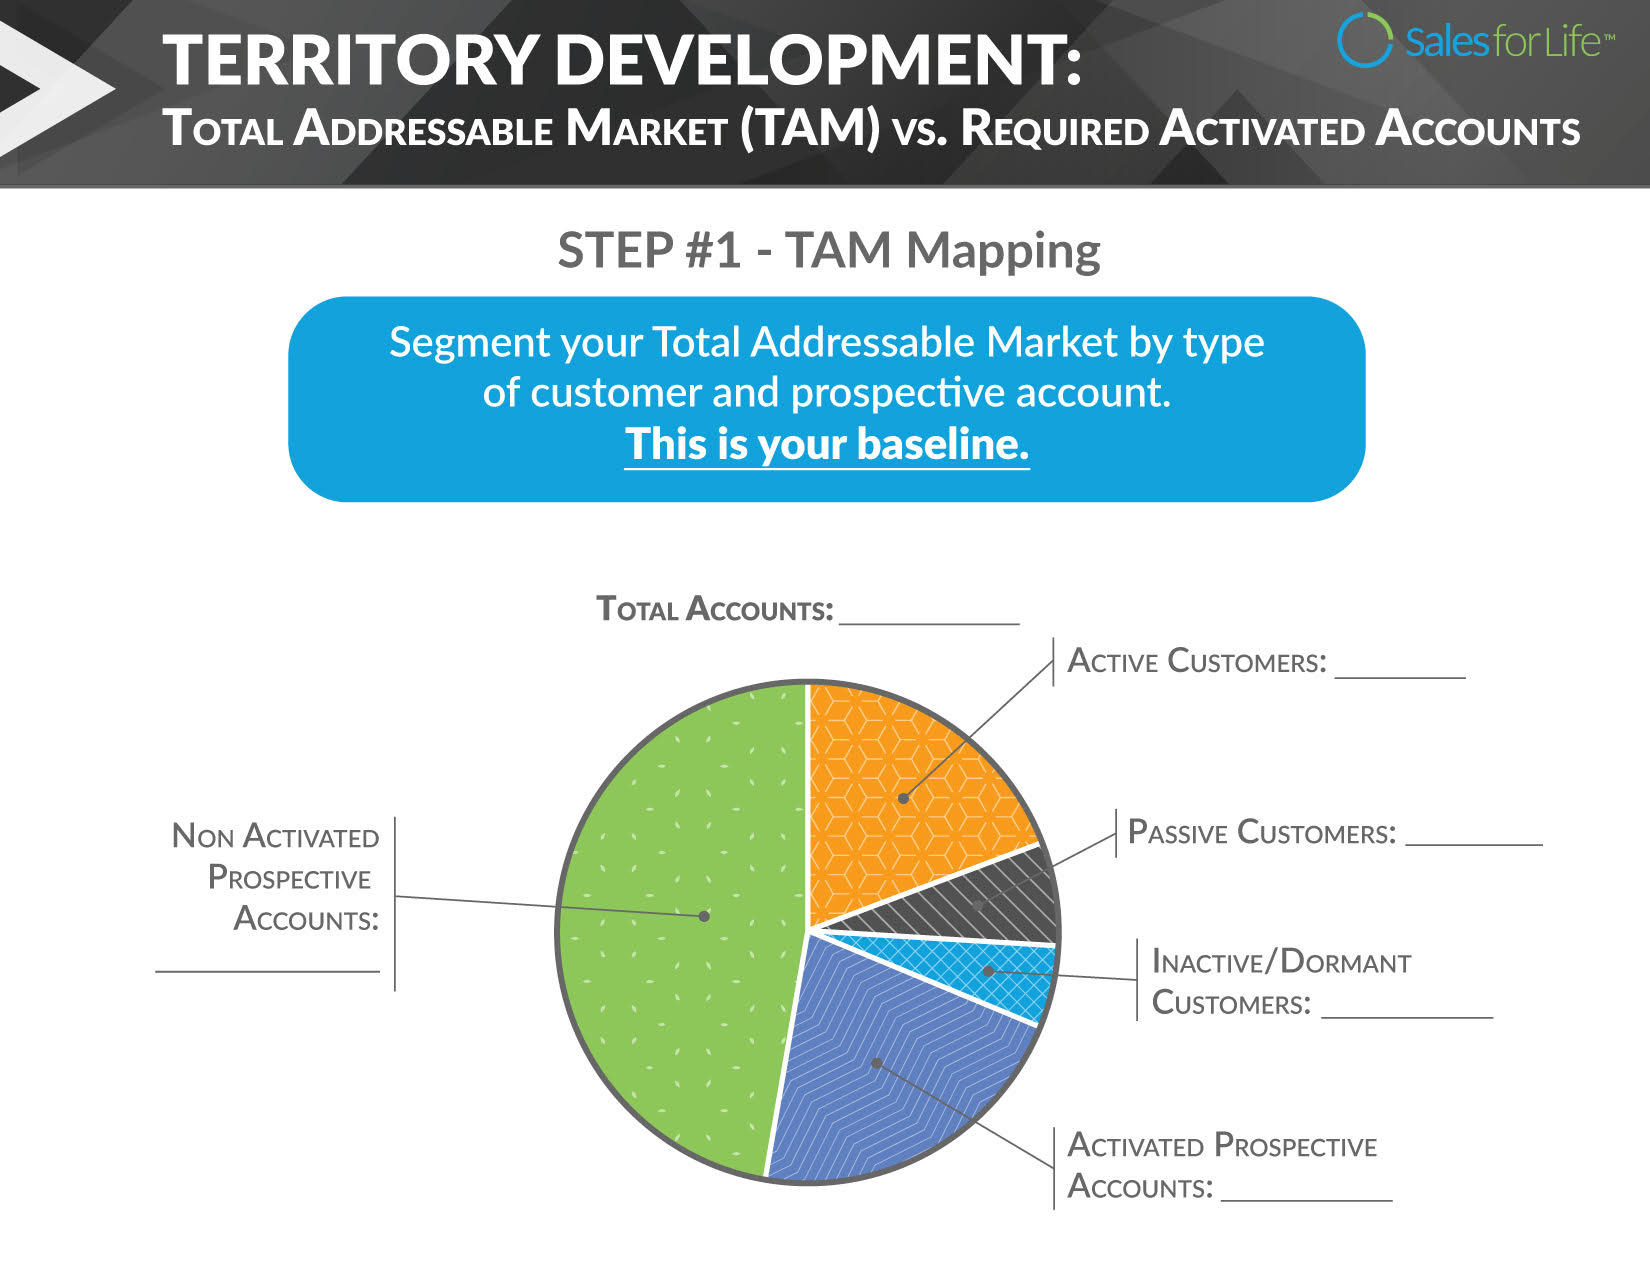 tam-the-first-step-every-territory-sales-rep-must-take